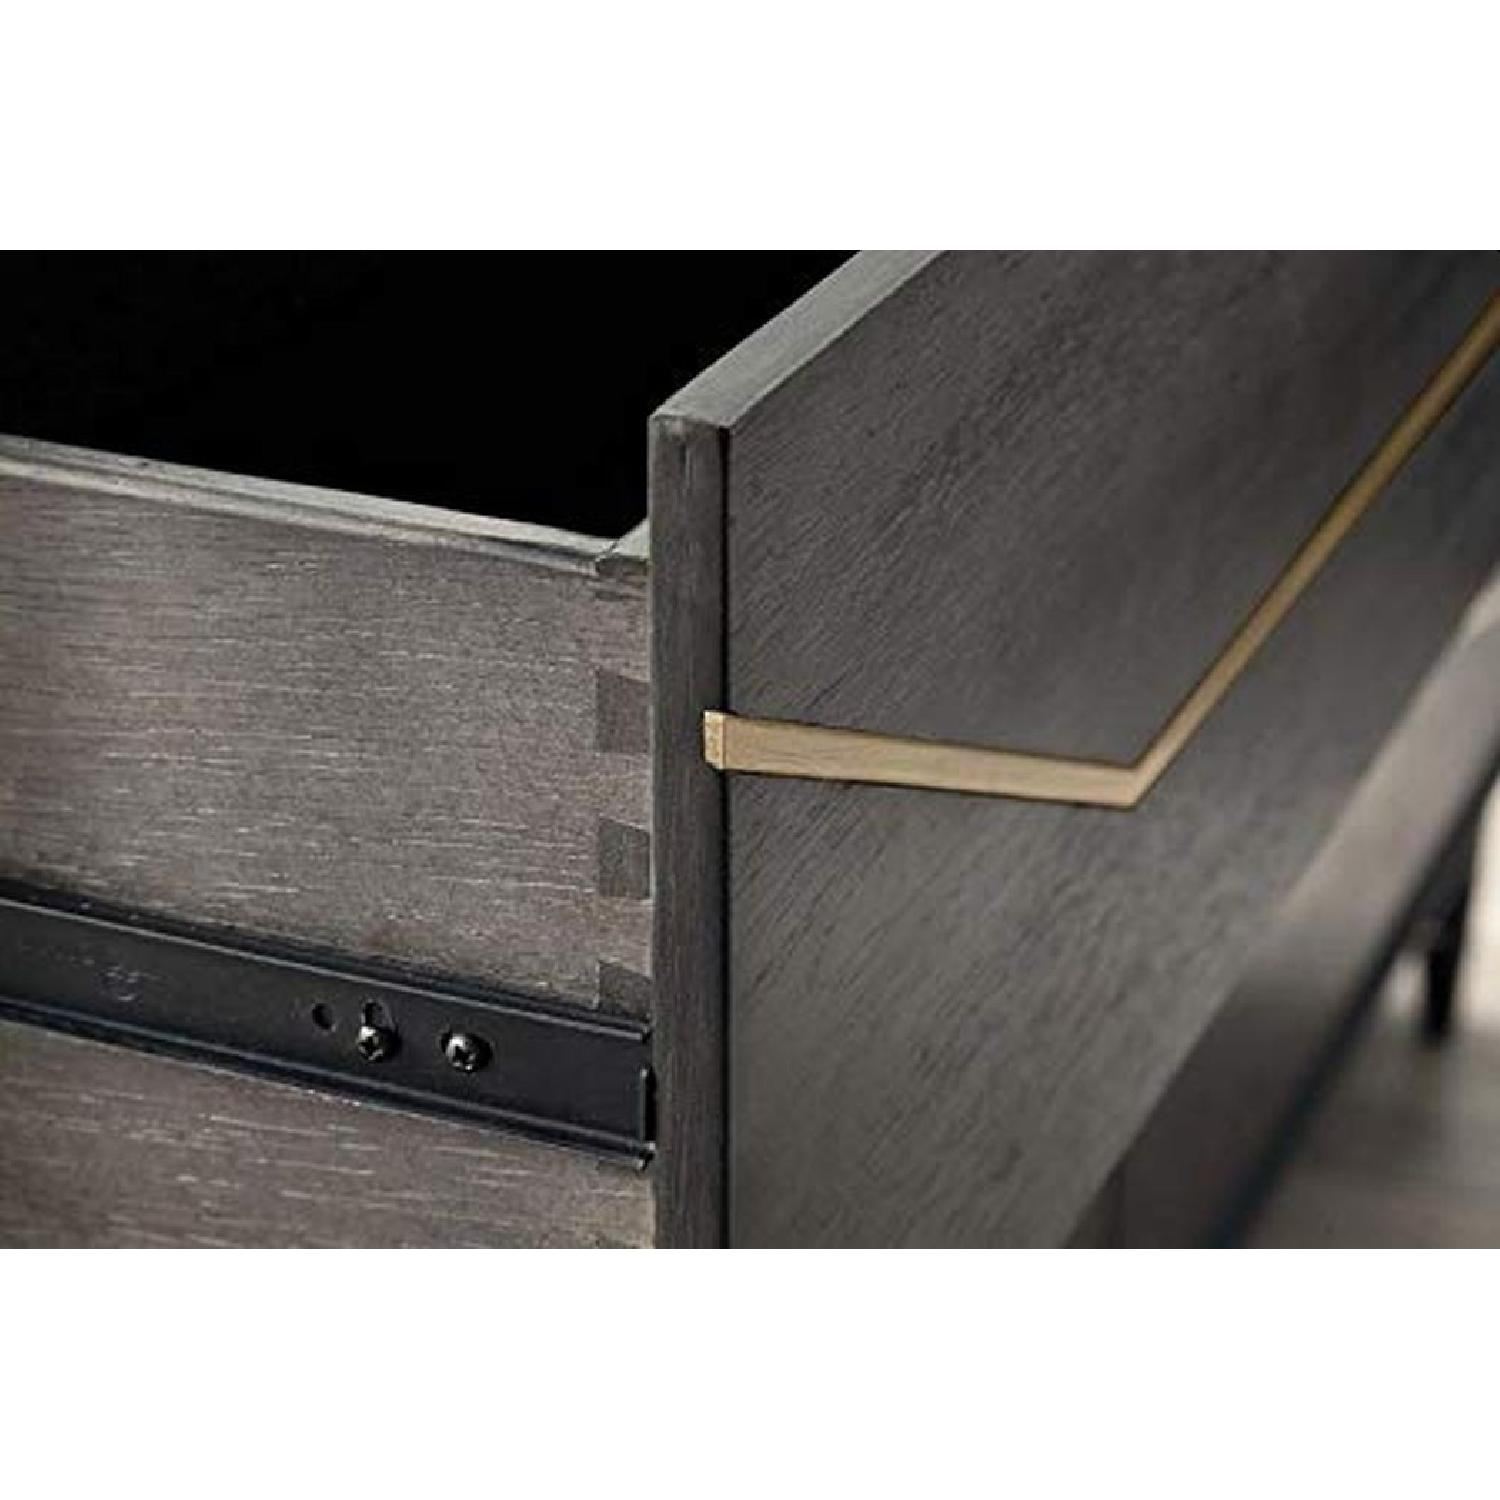 Modern Nightstand in Graphite Finish w/ Gold Color Inlay - image-1